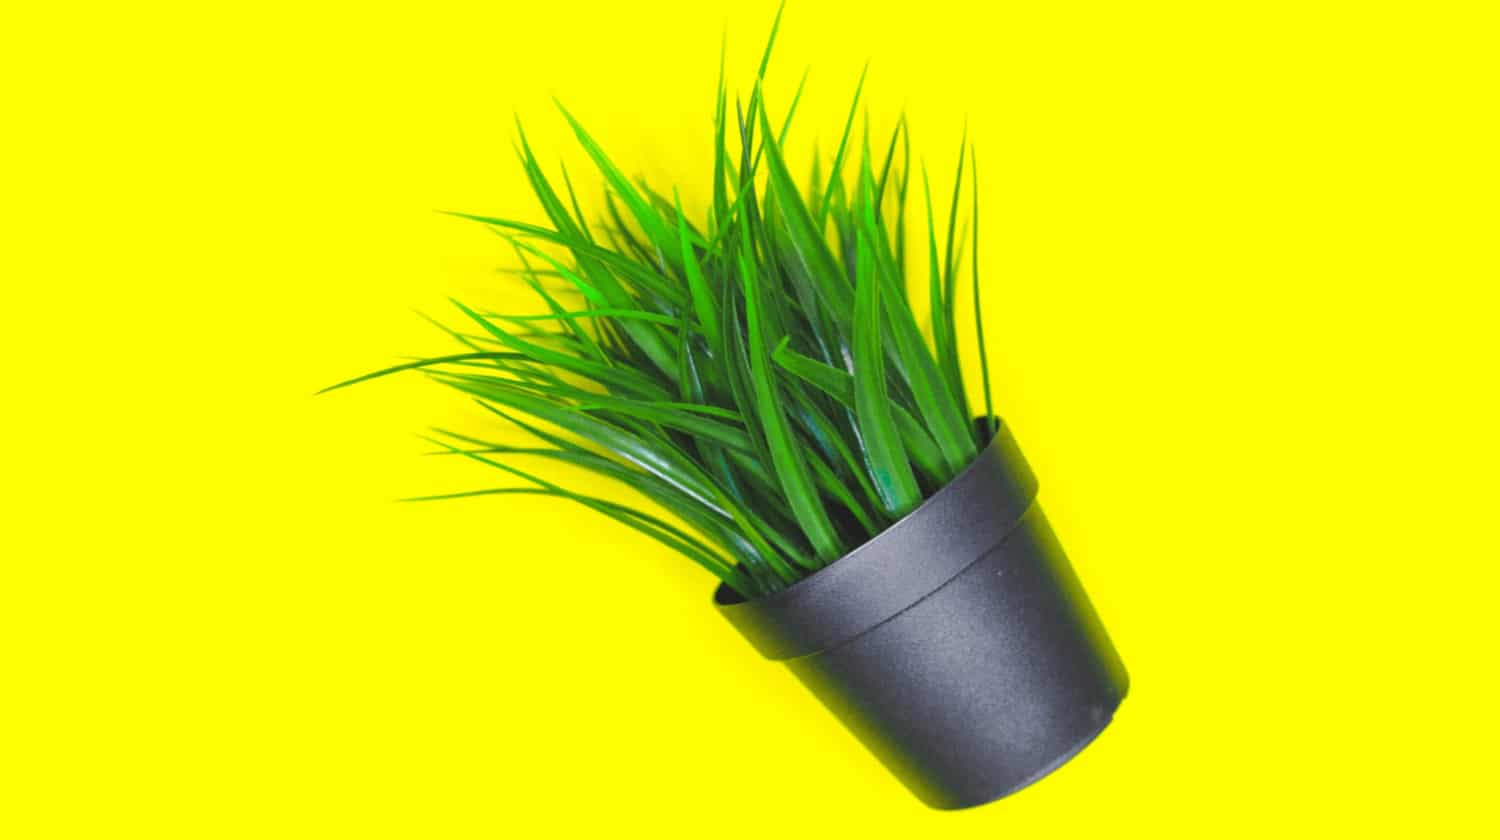 Artificial grass plant in a small pot on a bright yellow background